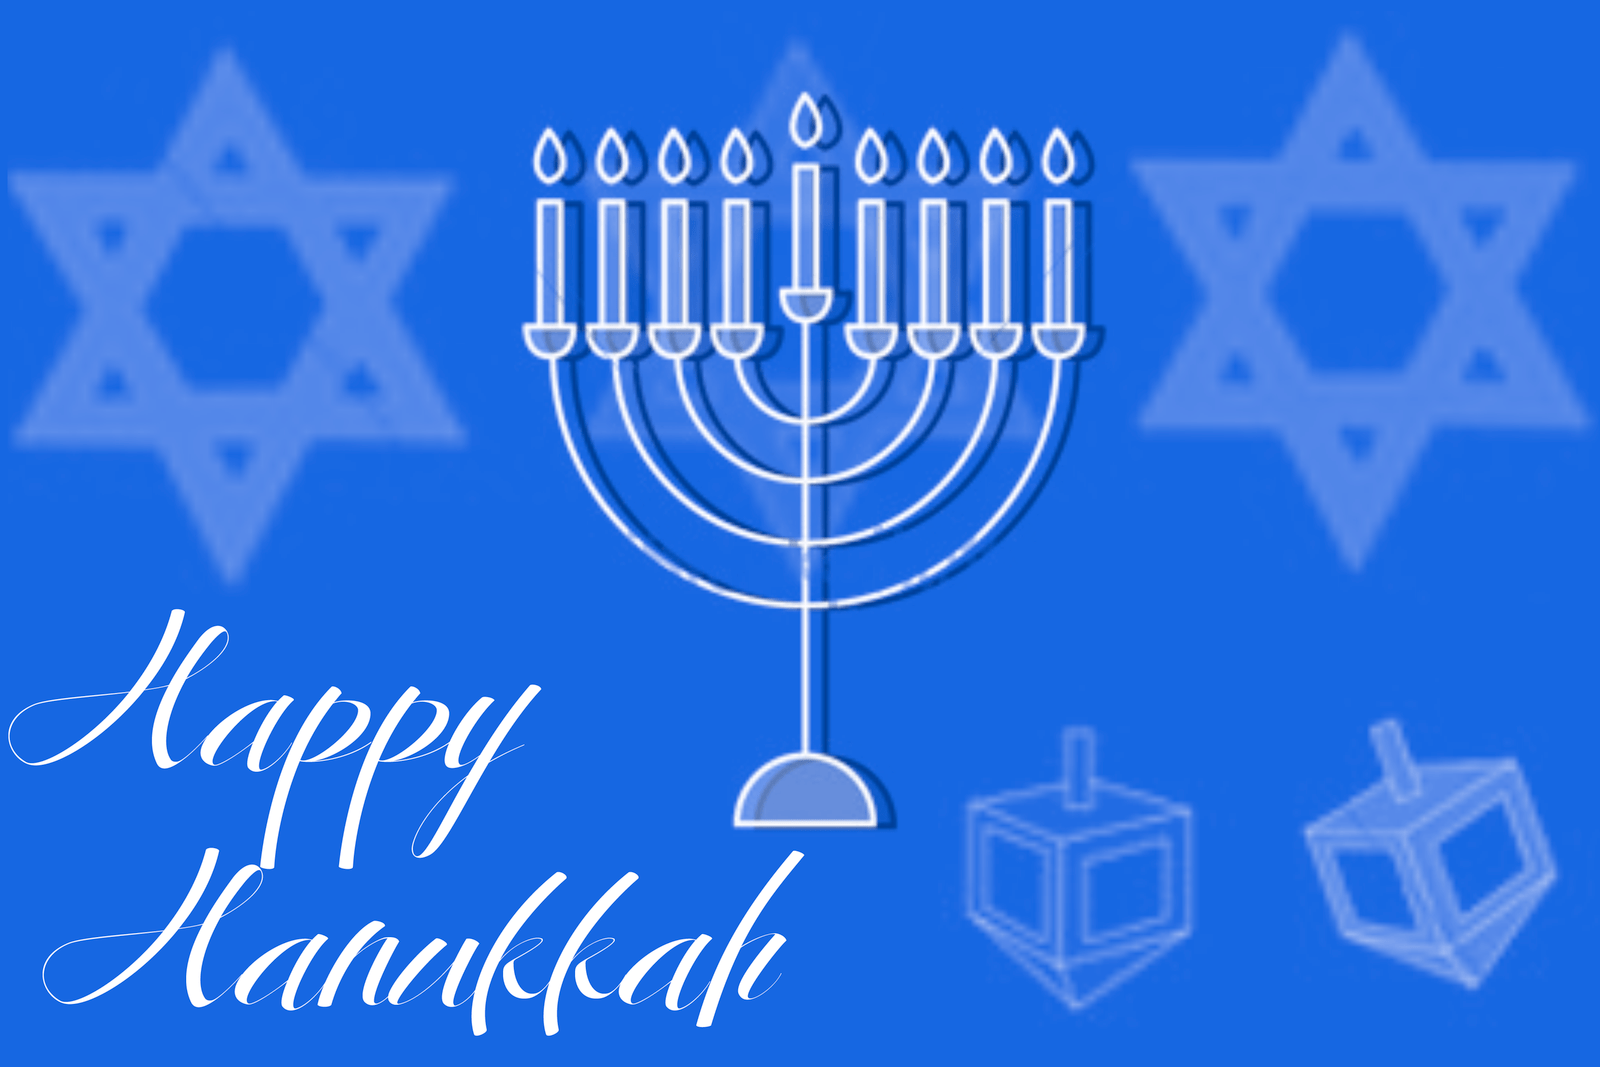 Happy Hanukkah Pictures Photos And Images For Facebook